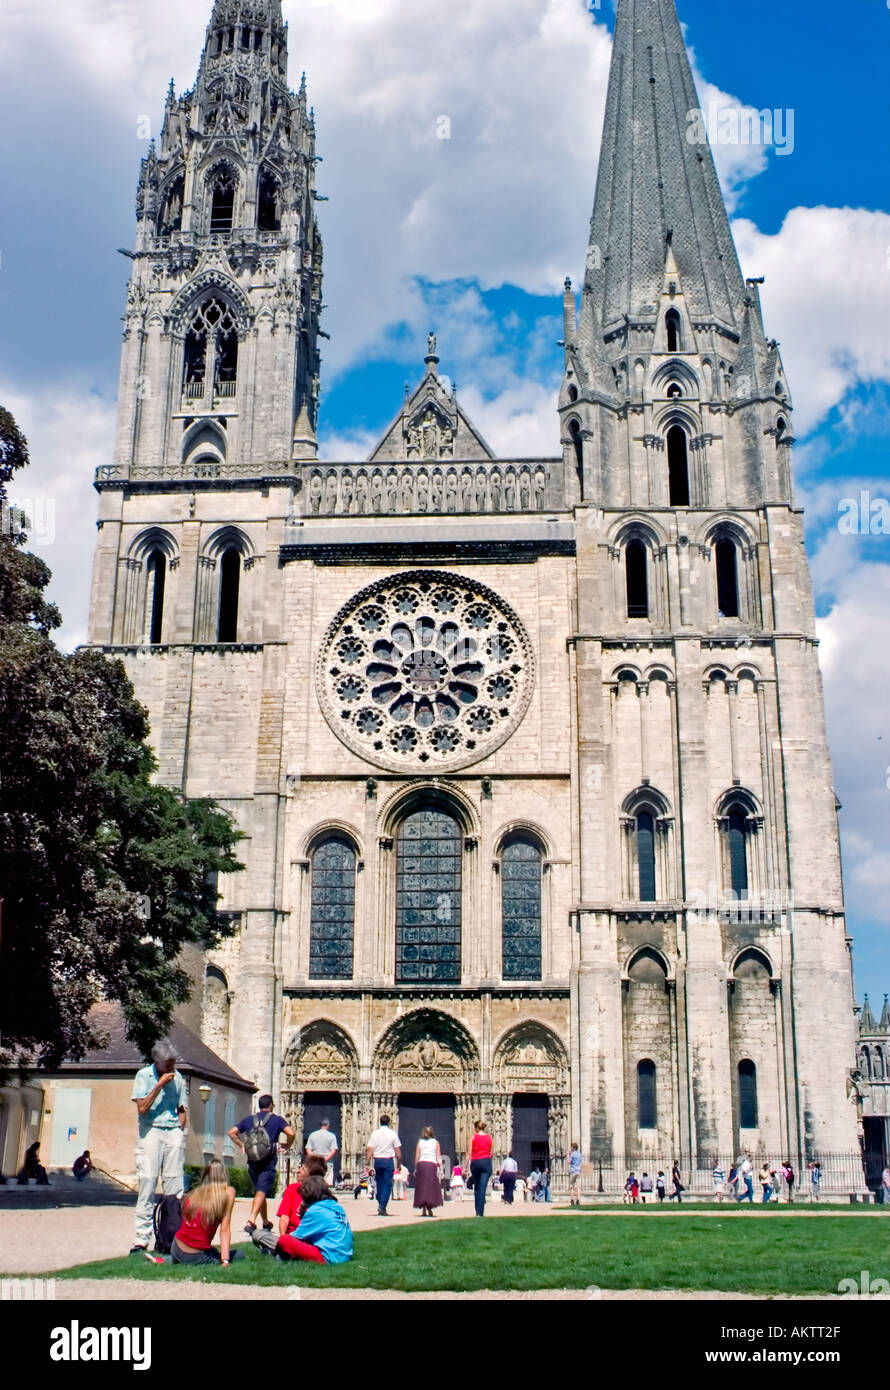 Chartres France Monument Notre Dame Cathedral Middle Ages Church From Place De La Cathedrale Tourists